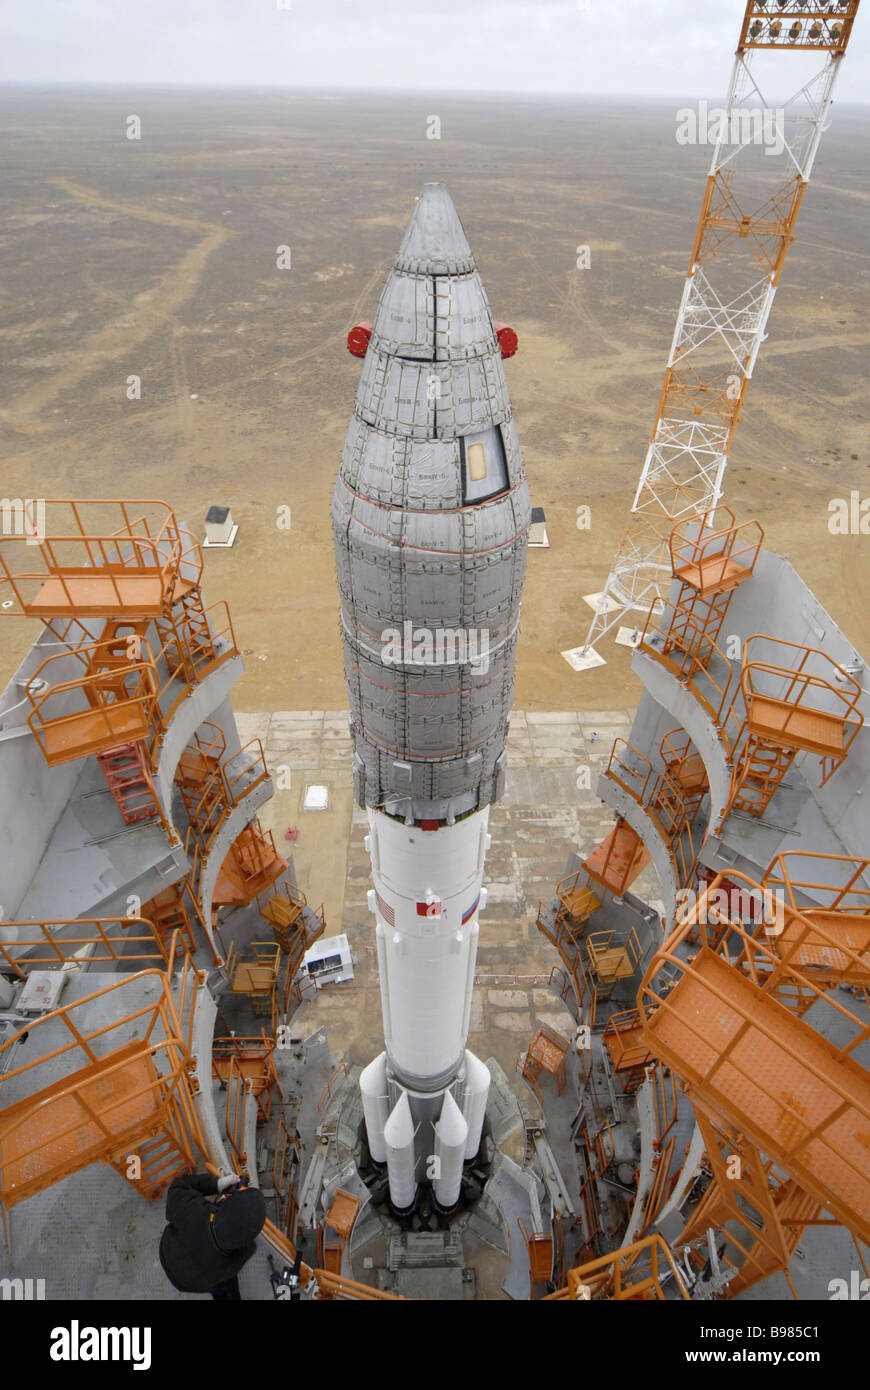 On November 18 2007 a Proton M rocket with the Briz M transfer orbit stage is to be launched from the Baikonur Cosmodrome - Stock Image